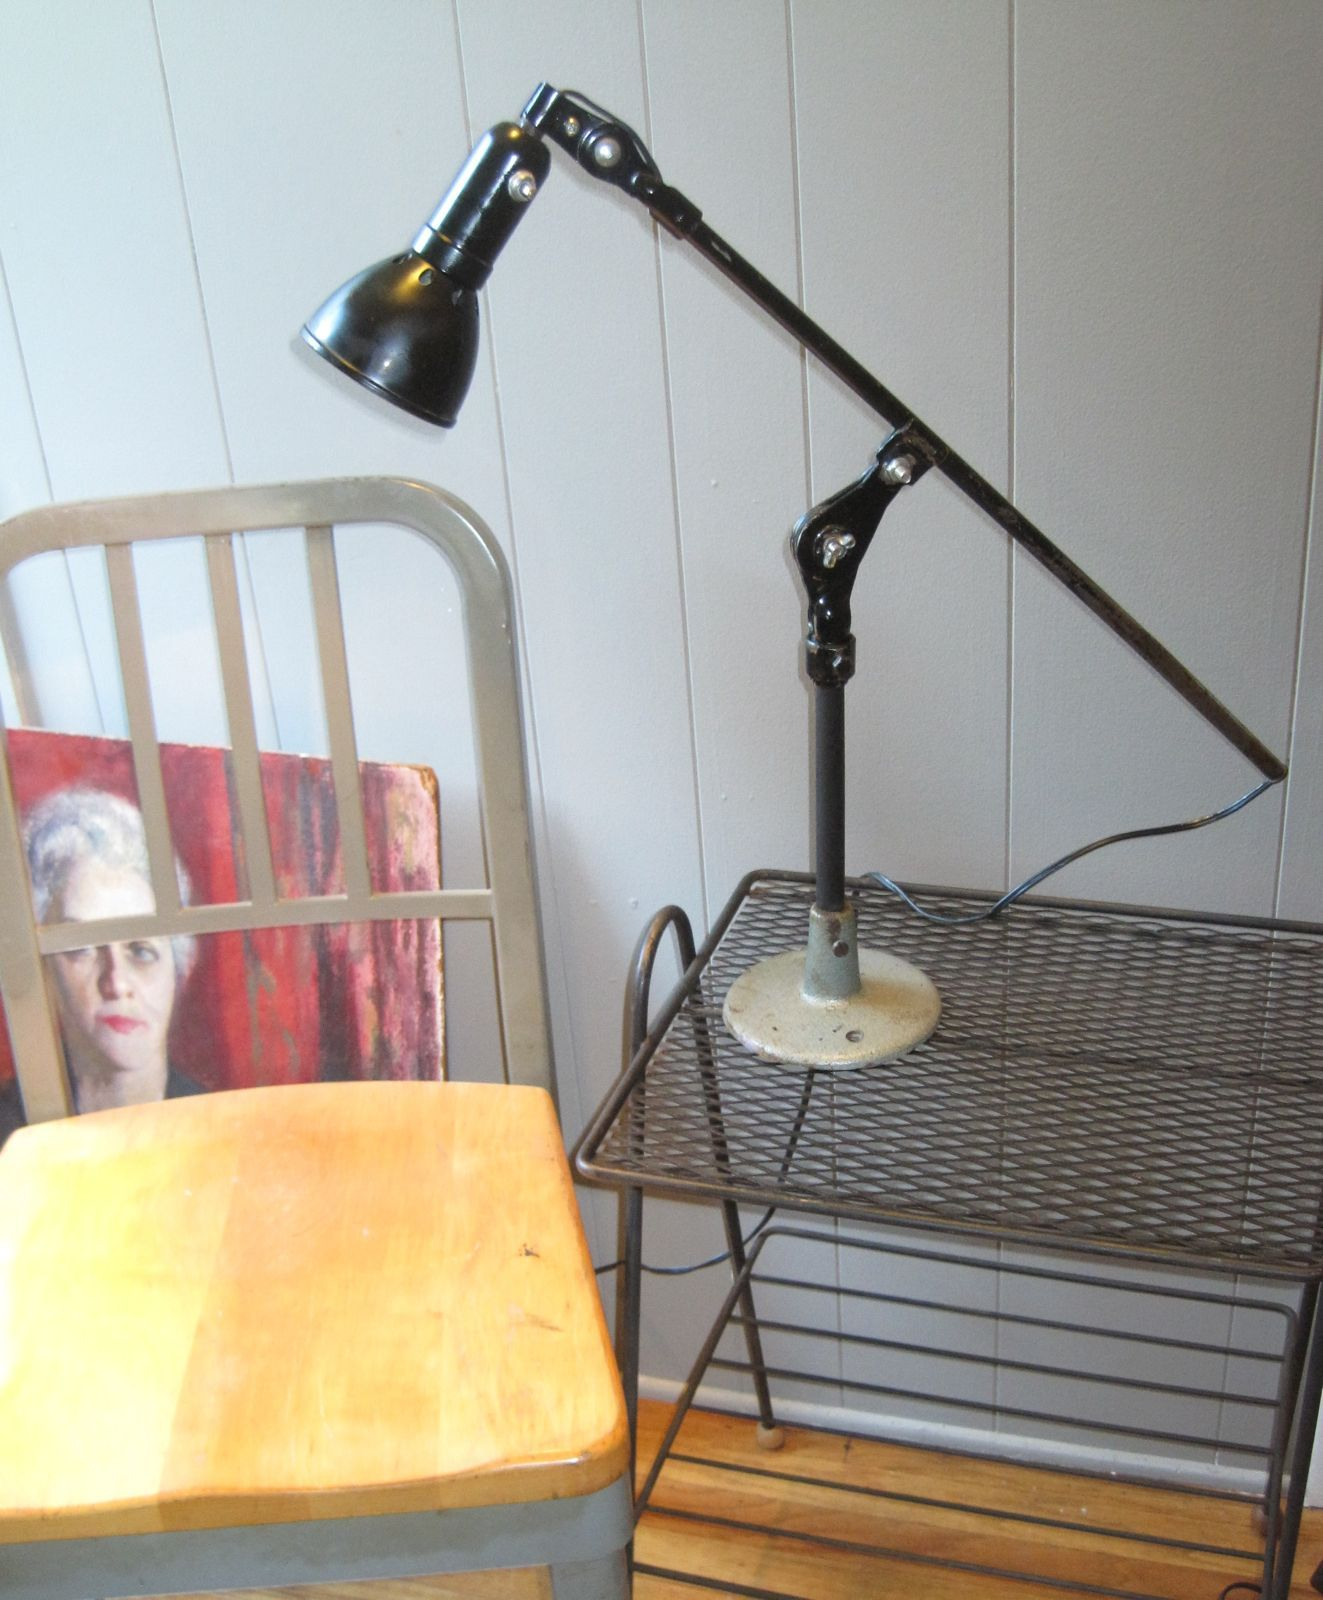 Table l& made with #Vintage #Industrial Sewing Machine Task Light parts  sc 1 st  Pinterest & Table lamp made with #Vintage #Industrial Sewing Machine Task ... azcodes.com